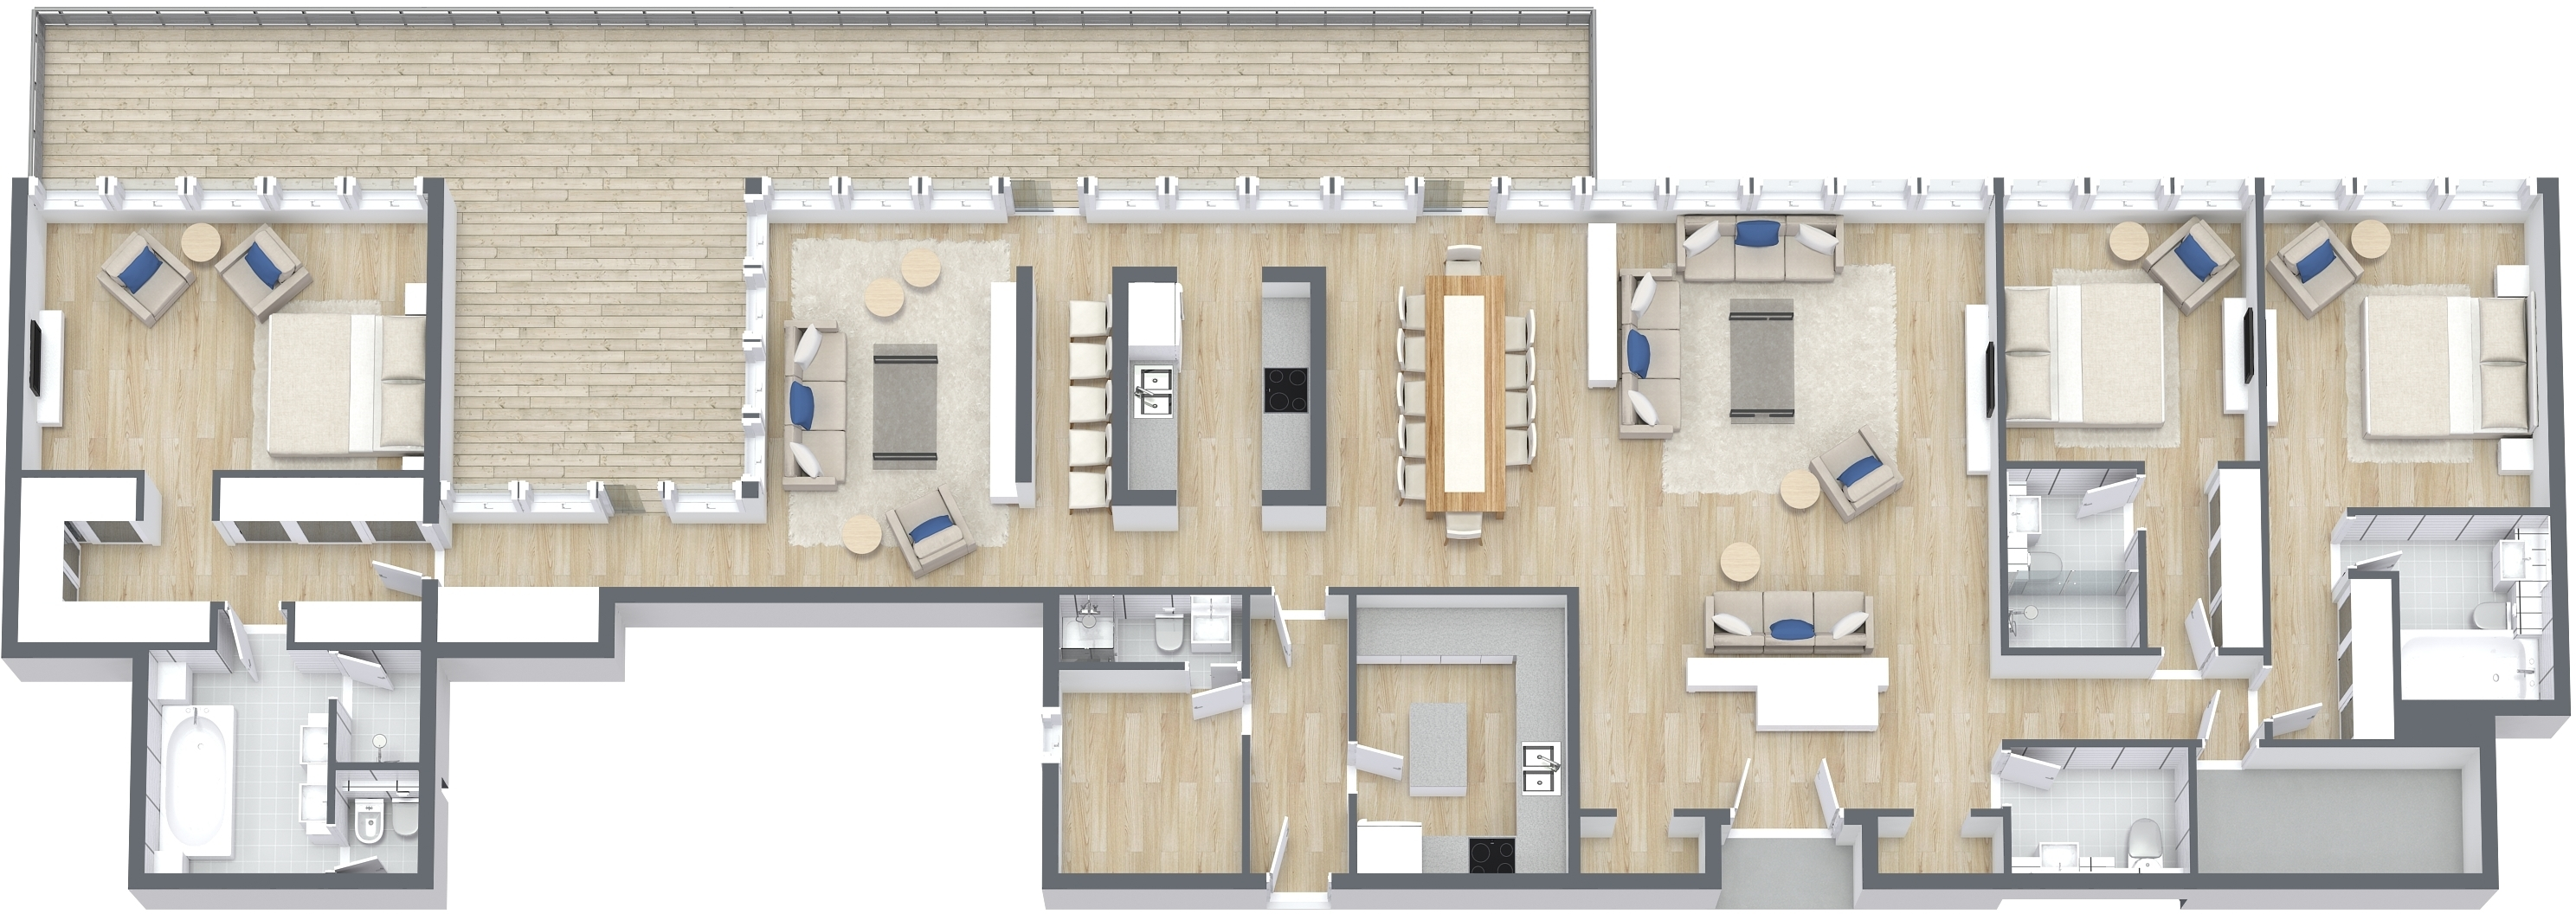 Penthouse, Size 4181 sq ft